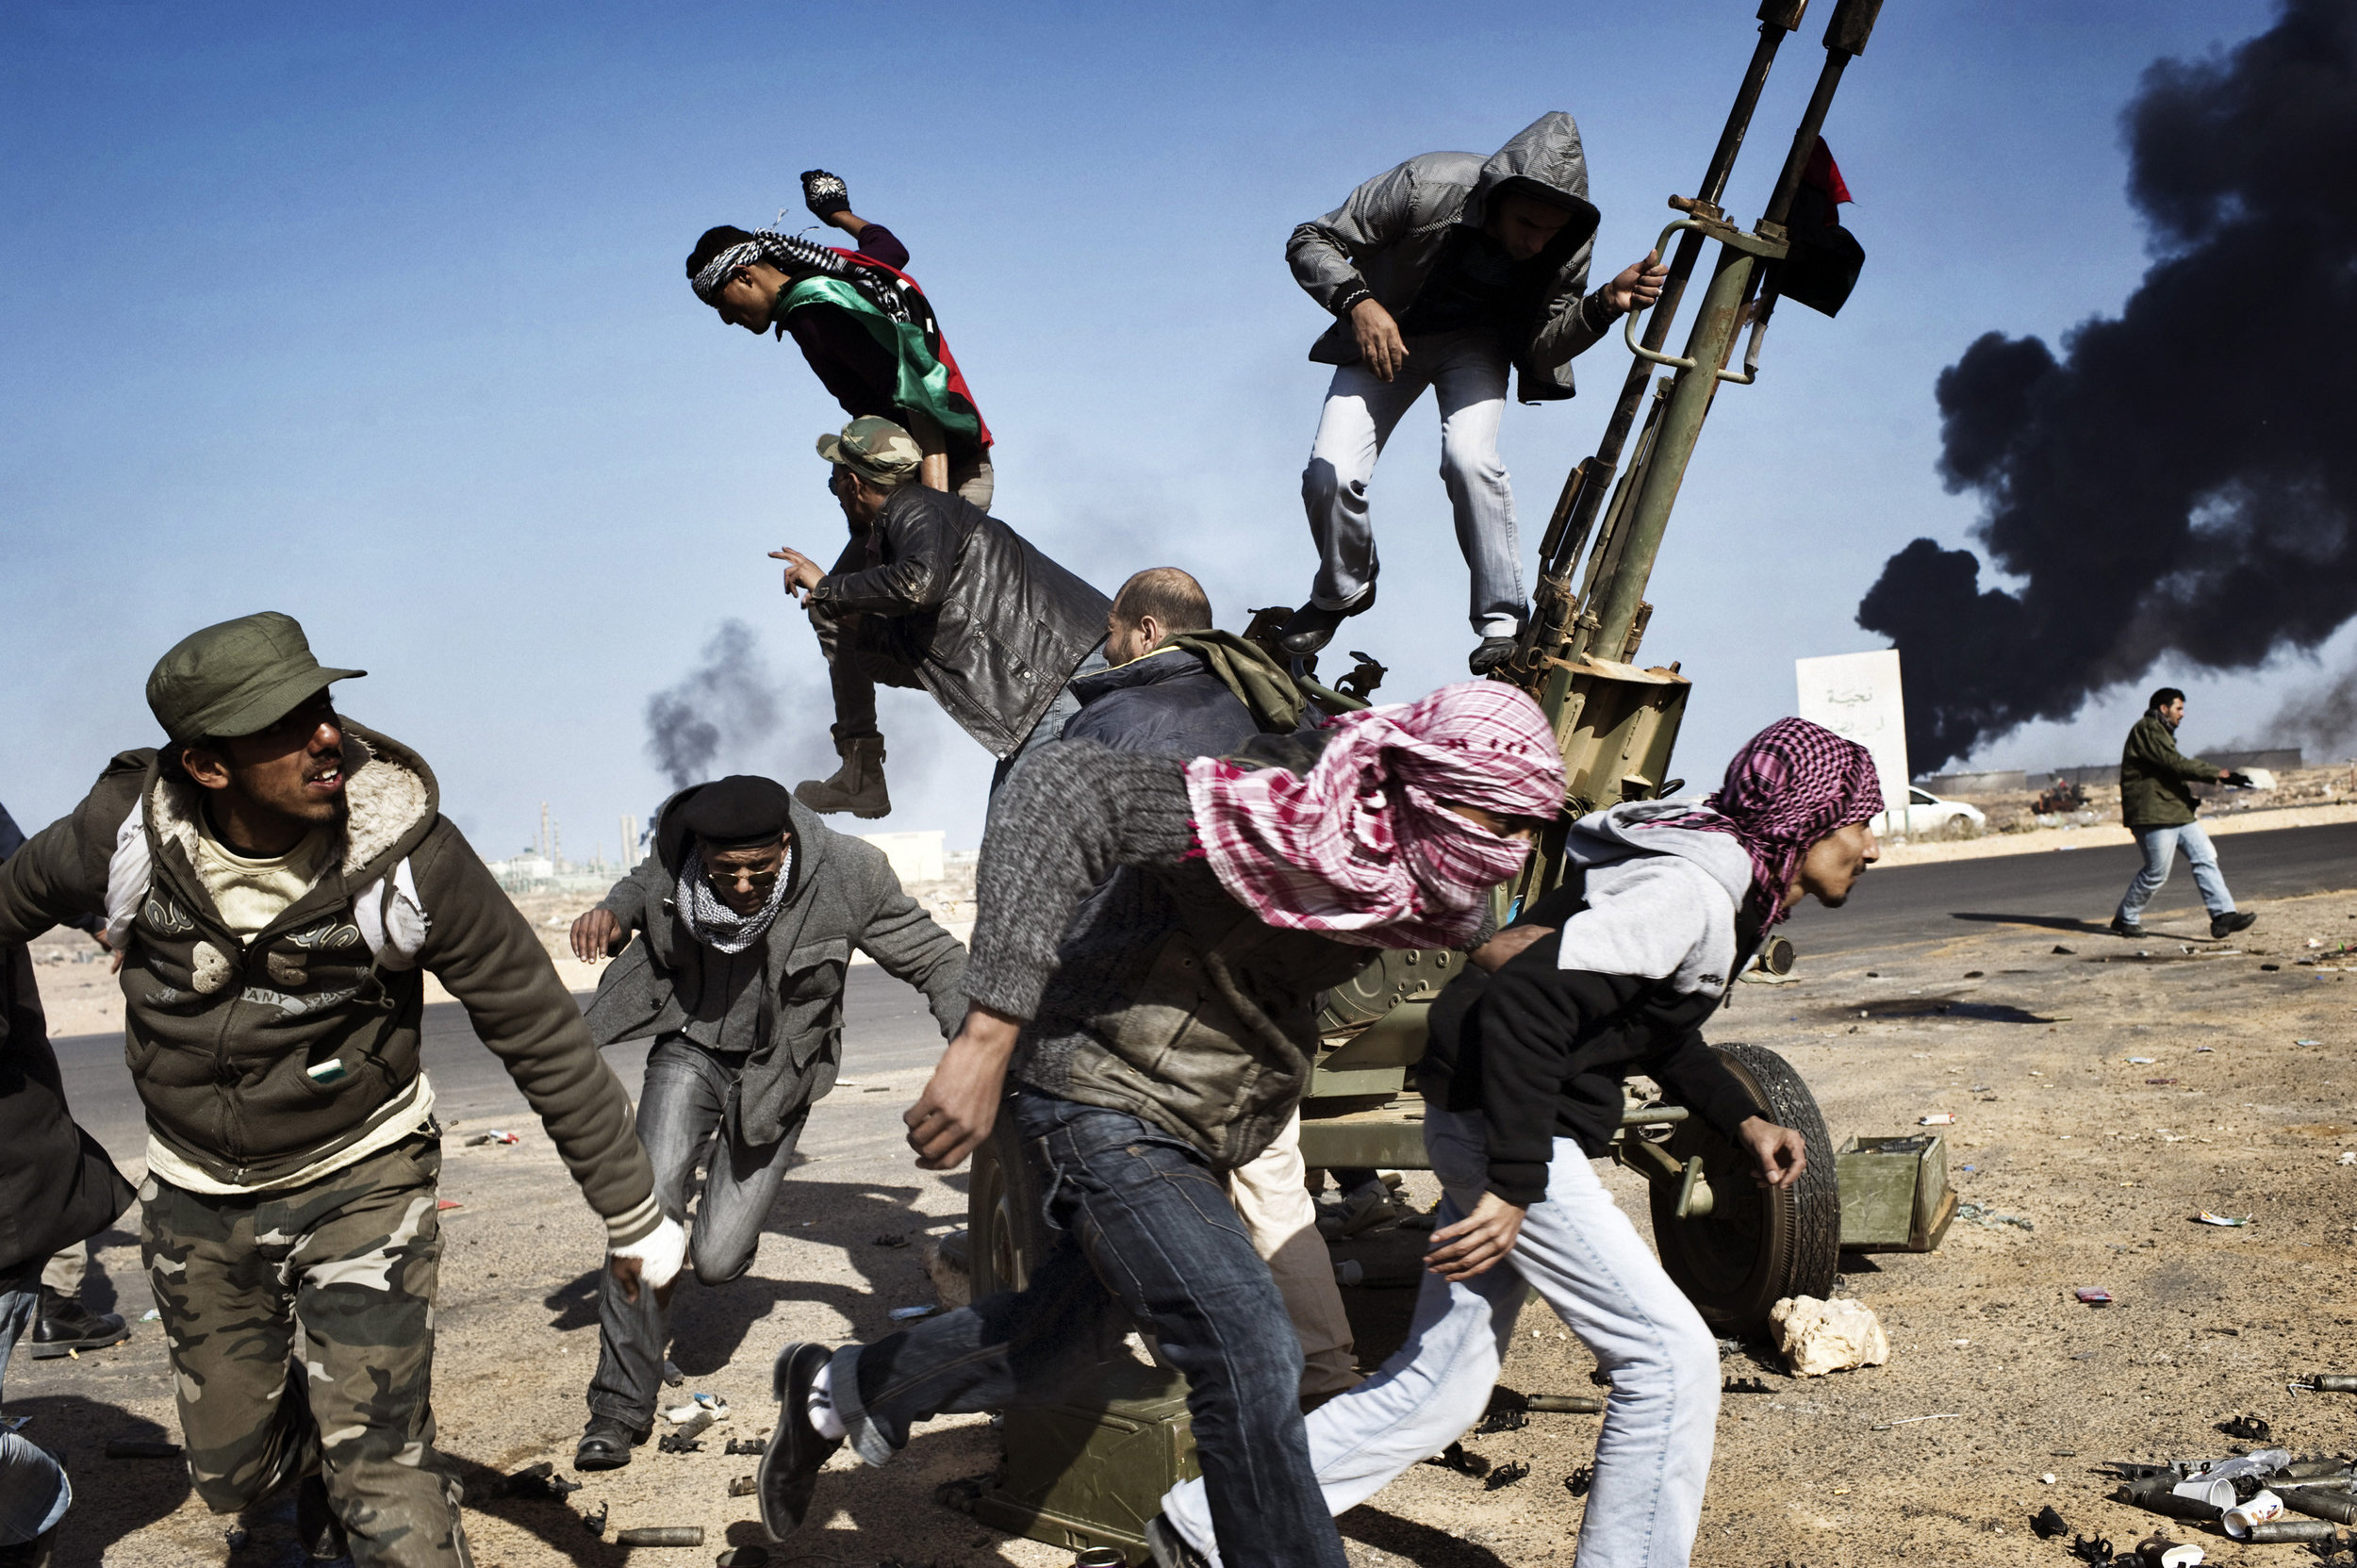 RAS LANUF, LIBYA - MARCH 11: Rebels flee under fire from the Libyan army